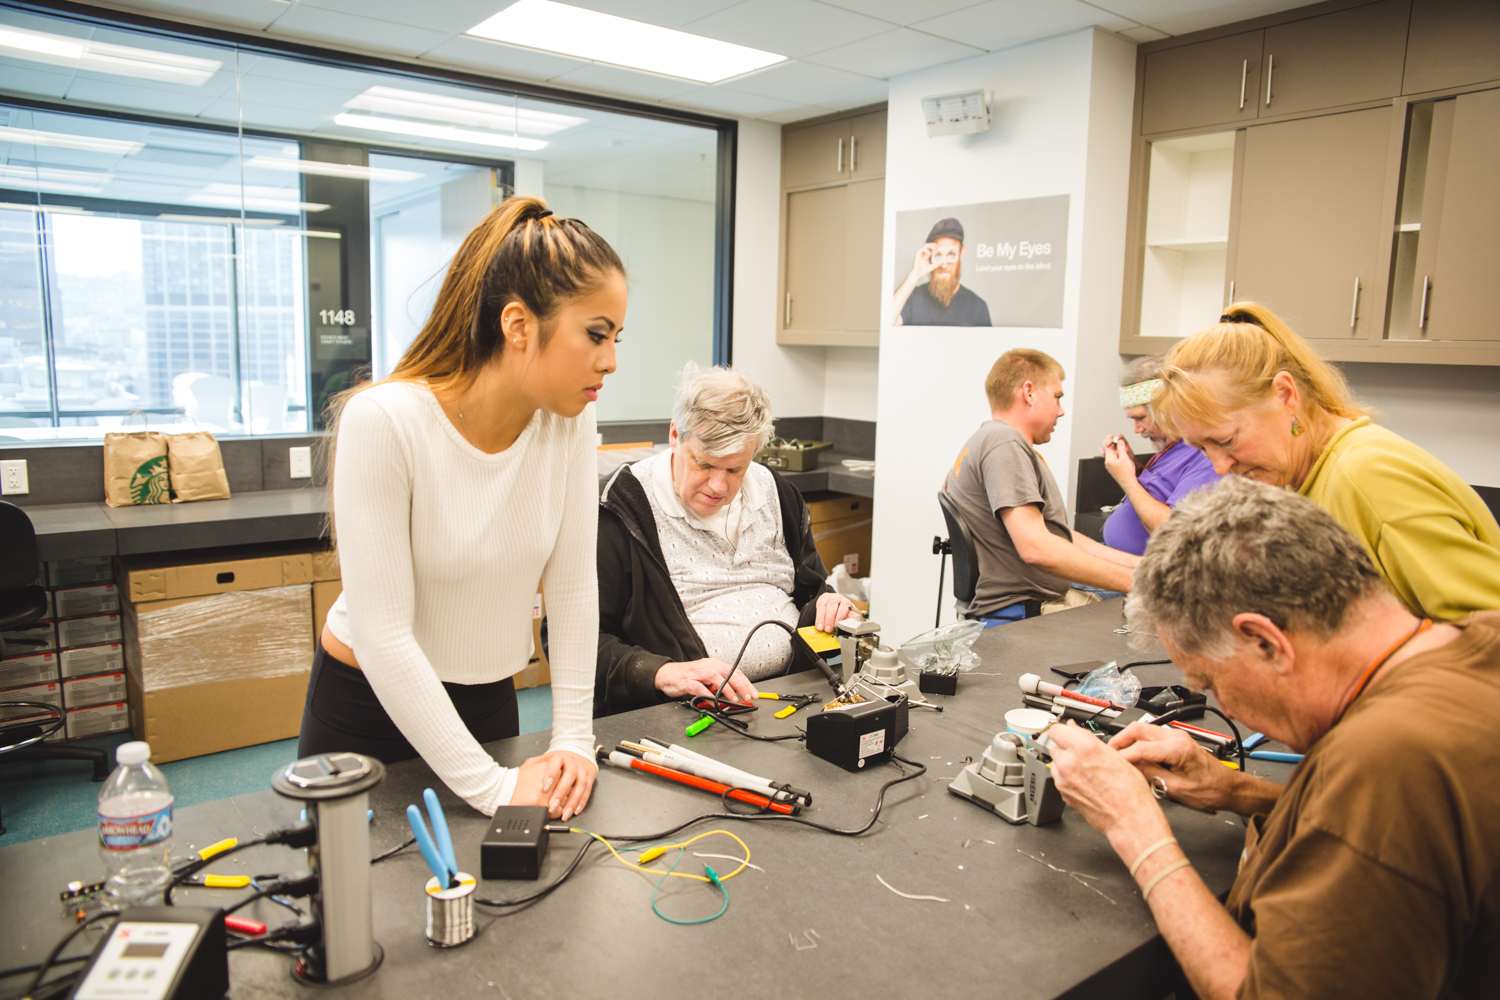 Six students and volunteers sit around two tables, hard at work. The grey work surface is scattered with castaway bits of wire and solder. The lab's large windows offer a view of neighboring grey buildings.